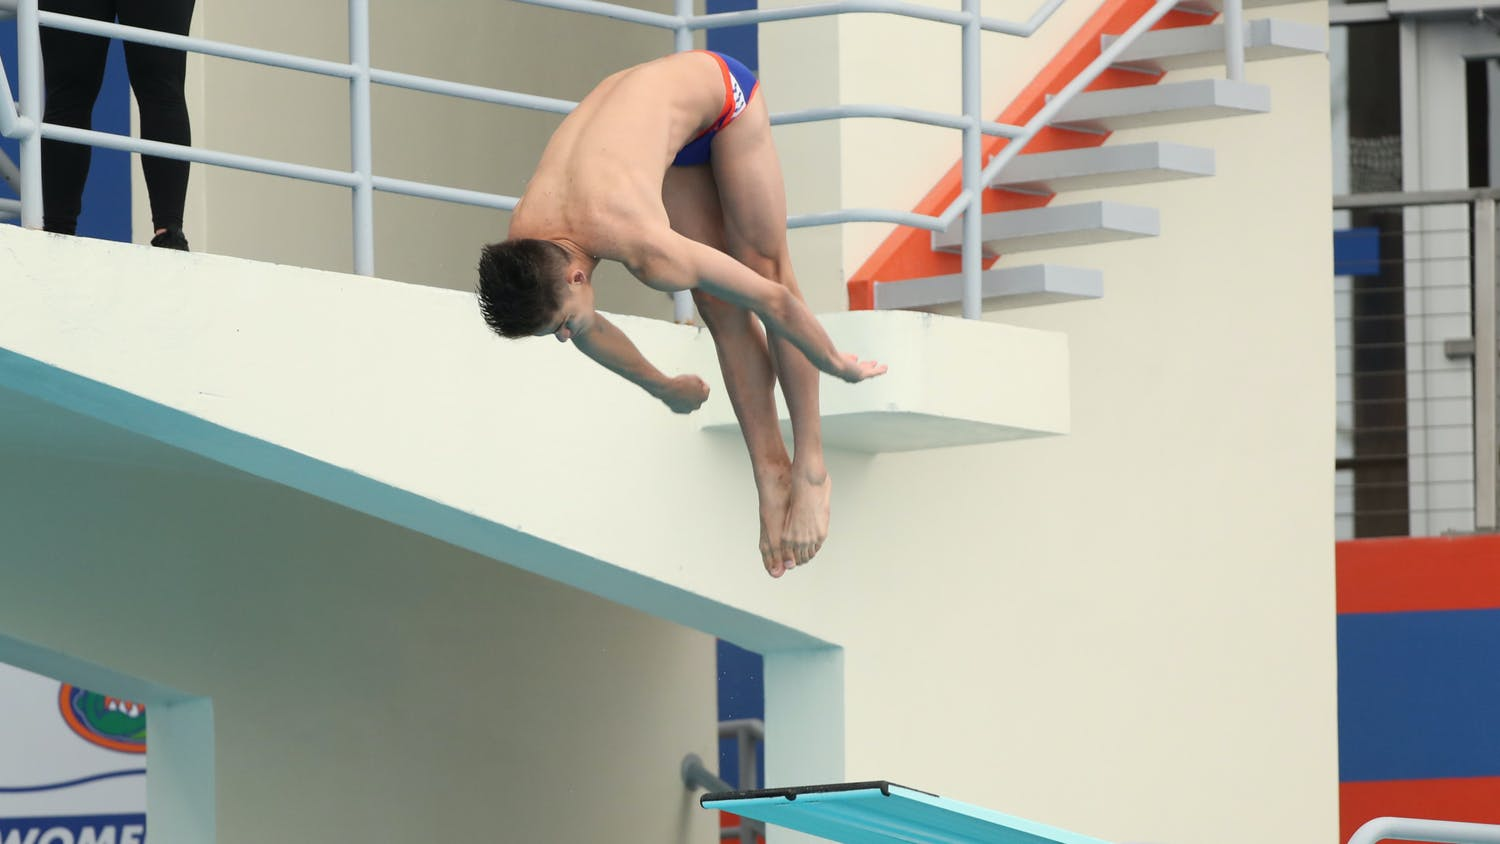 Florida's Leo Garcia during the Gators' meet against the Miami Hurricanes on Thursday, November 5, 2020 at the Stephen C. O'Connell Center Natatorium in Gainesville, FL (UAA Communications photo by Isabella Marley)